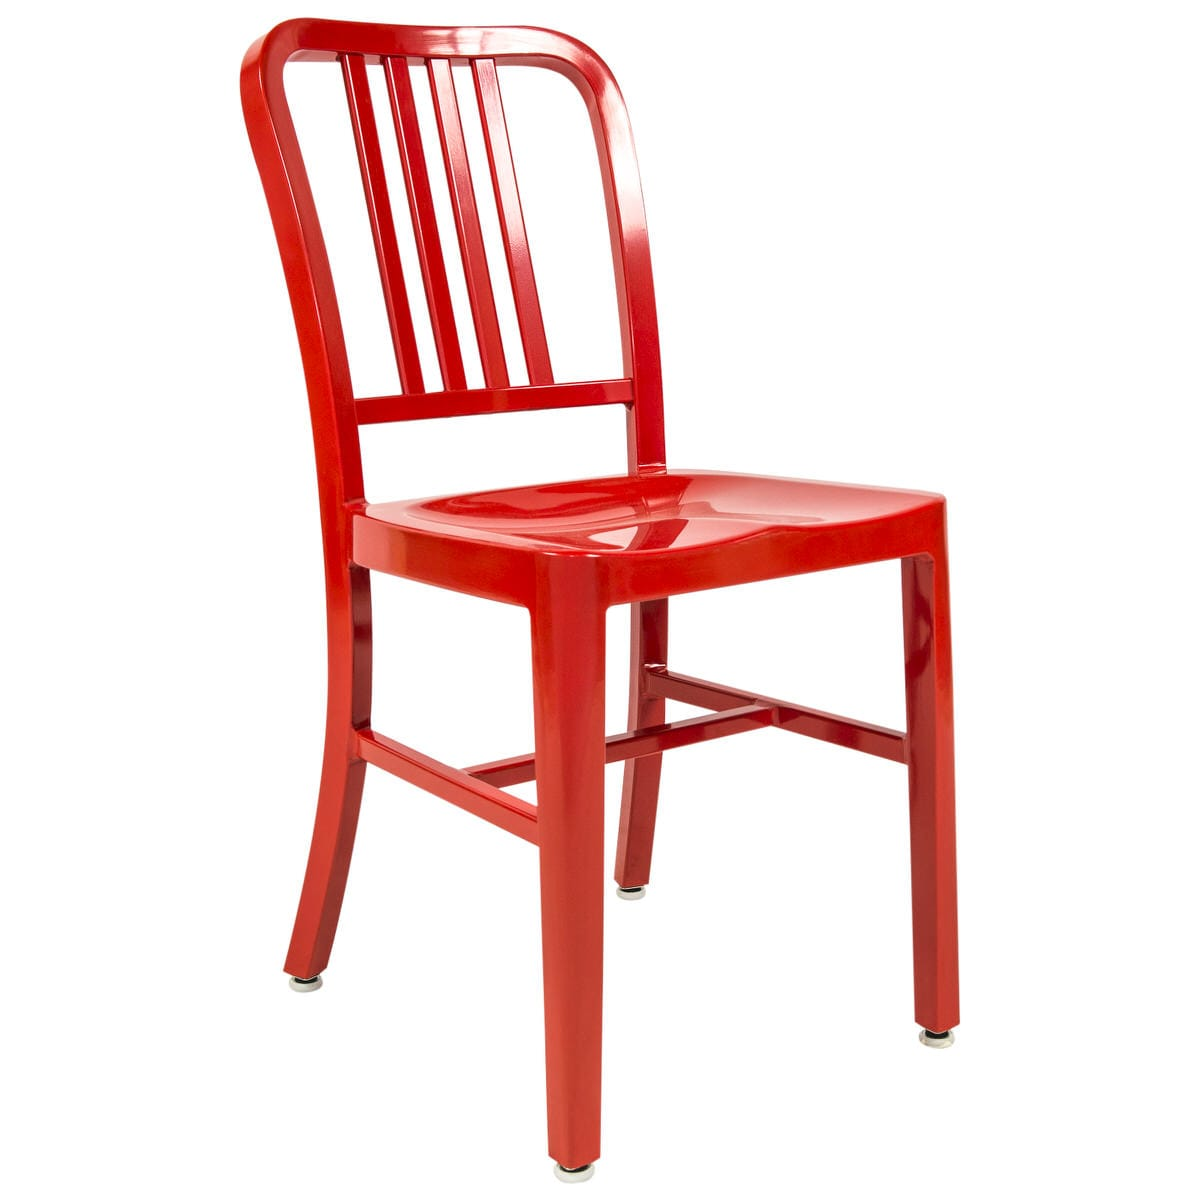 Awesome Alton Modern Side Red Dining Chair By Leisuremod Beatyapartments Chair Design Images Beatyapartmentscom